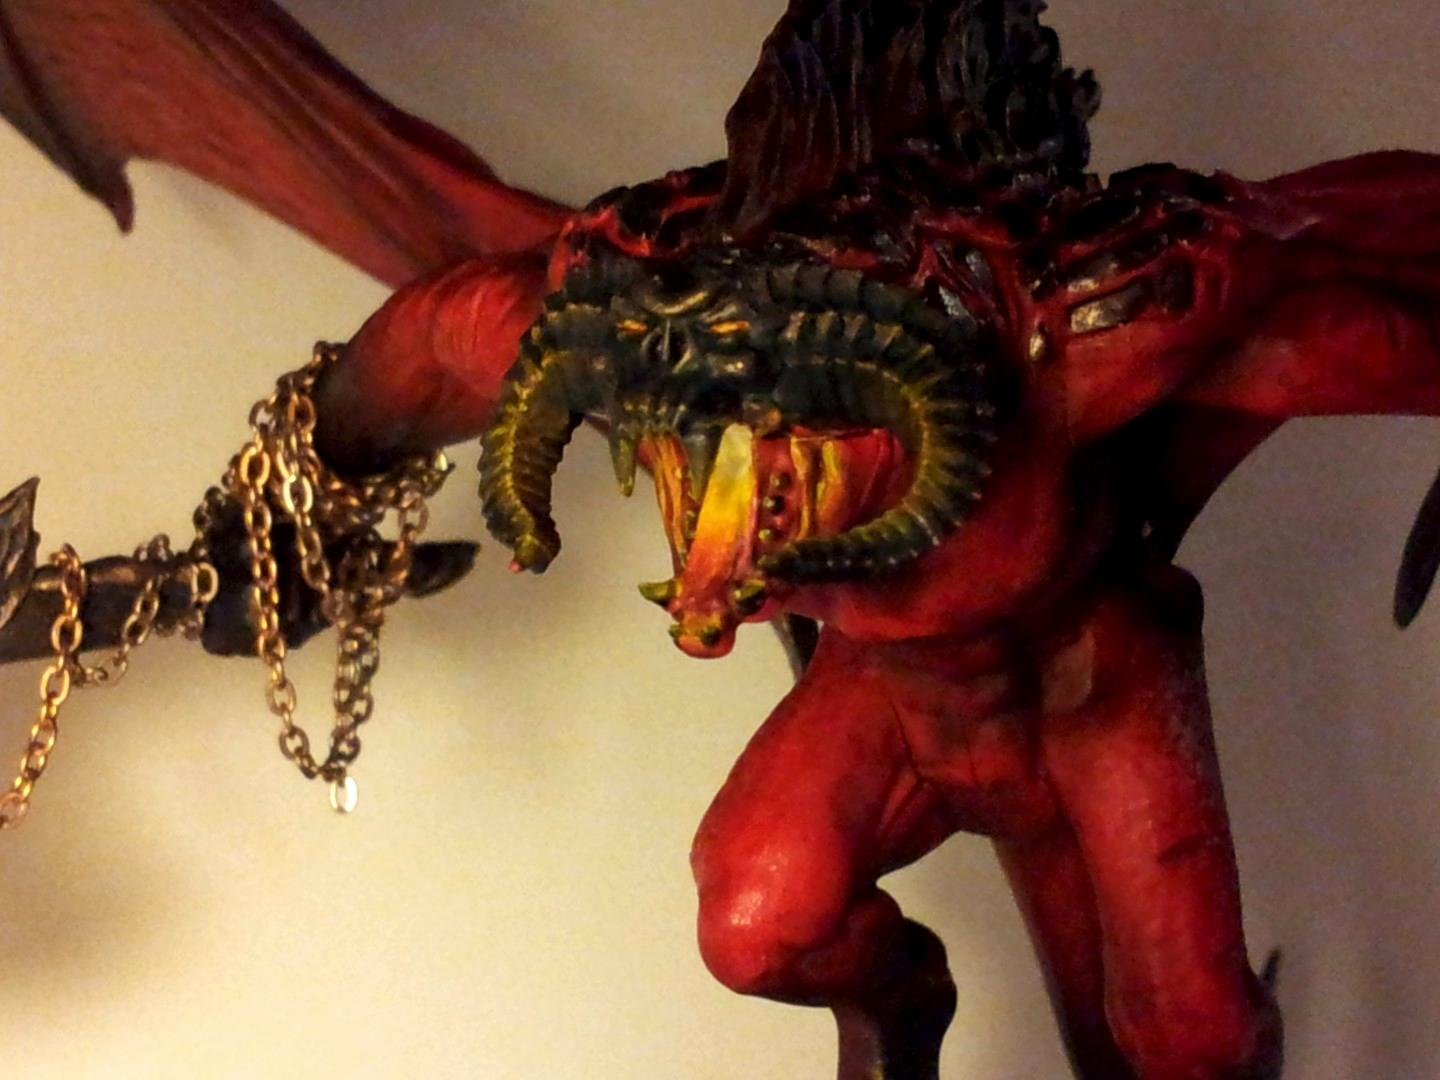 Balrog, Balrog. Bloodthirster, Bloodthirster, Chaos, Chaos Daemons, Conversion, Daemons, Fire, Greater Daemon, Khorne, Object Source Lighting, Red